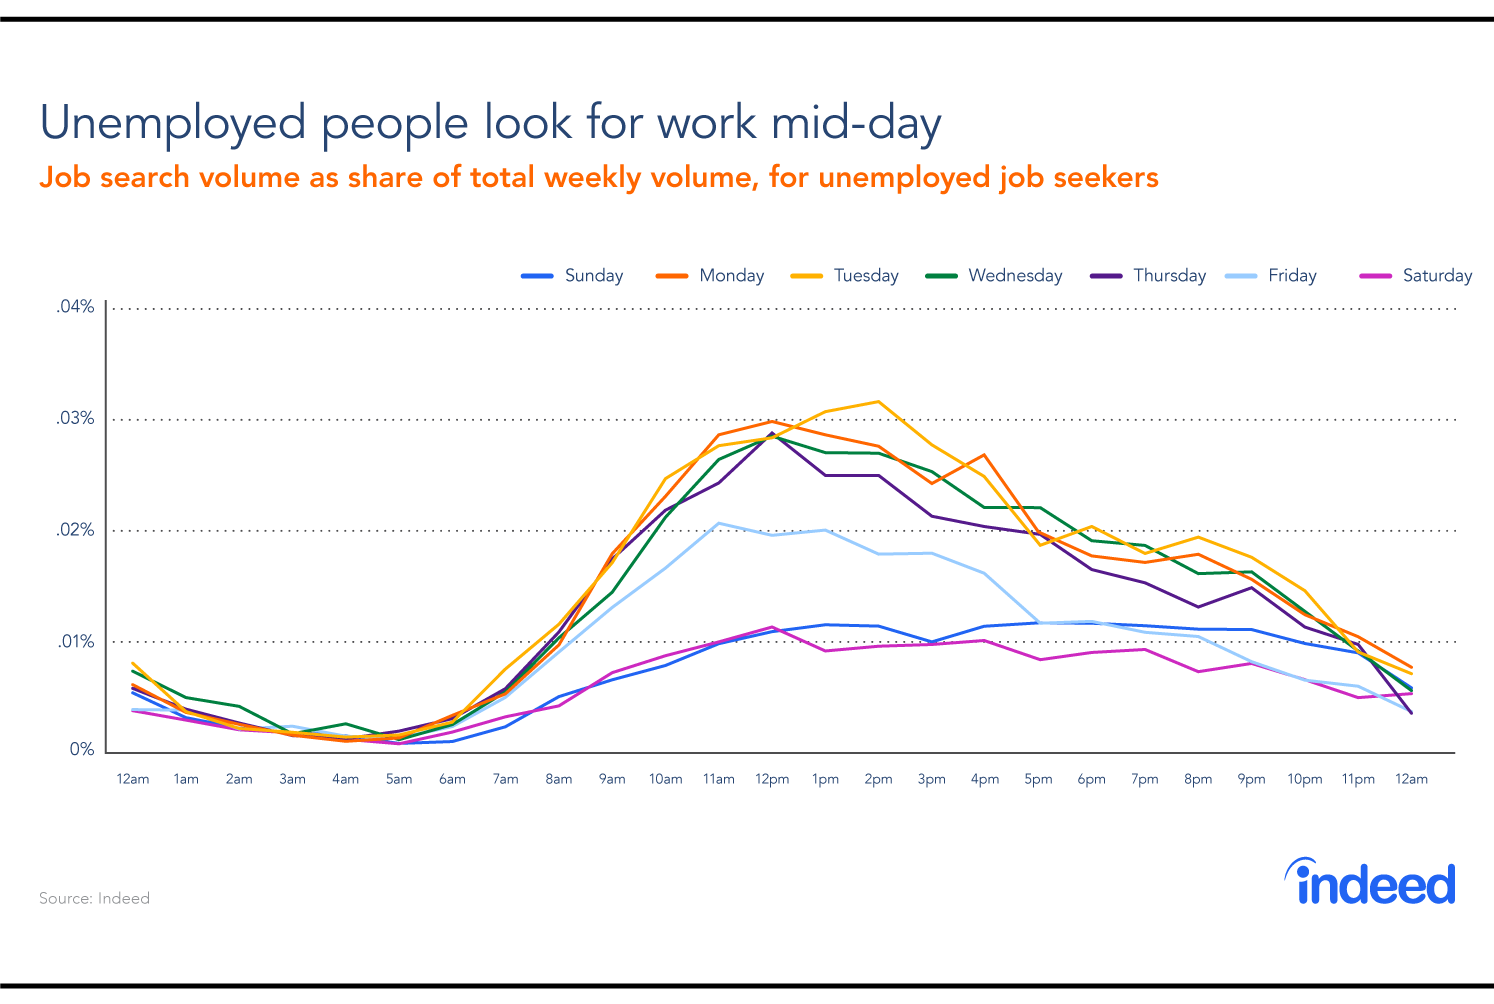 A graph showing the busiest days of the week and times of day that unemployed people look for jobs.